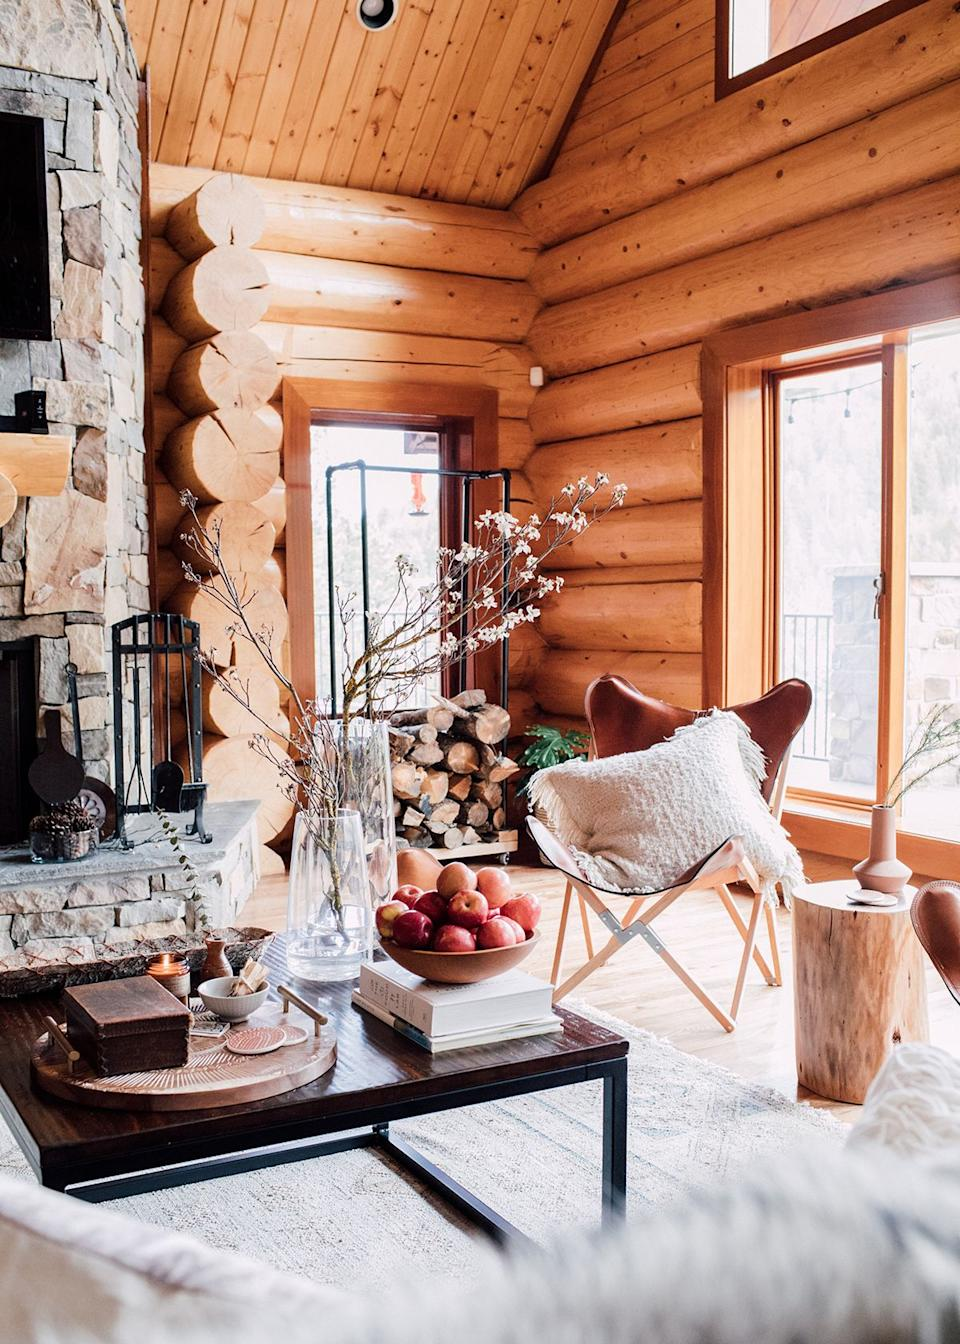 """Although the cabin's vaulted ceilings are the stuff of Pinterest dreams, furnishing the open-floor-plan living room came with a particular set of challenges, explains Kula. """"It requires that everything works together seamlessly, as opposed to a space that is more compartmentalized and designed room by room,"""" she elaborates. """"Although it's difficult, when you get it right, you create a space that feels so right. That's the real magic. It all feels so thoughtful and intentional; every detail is in its rightful, styled place."""""""